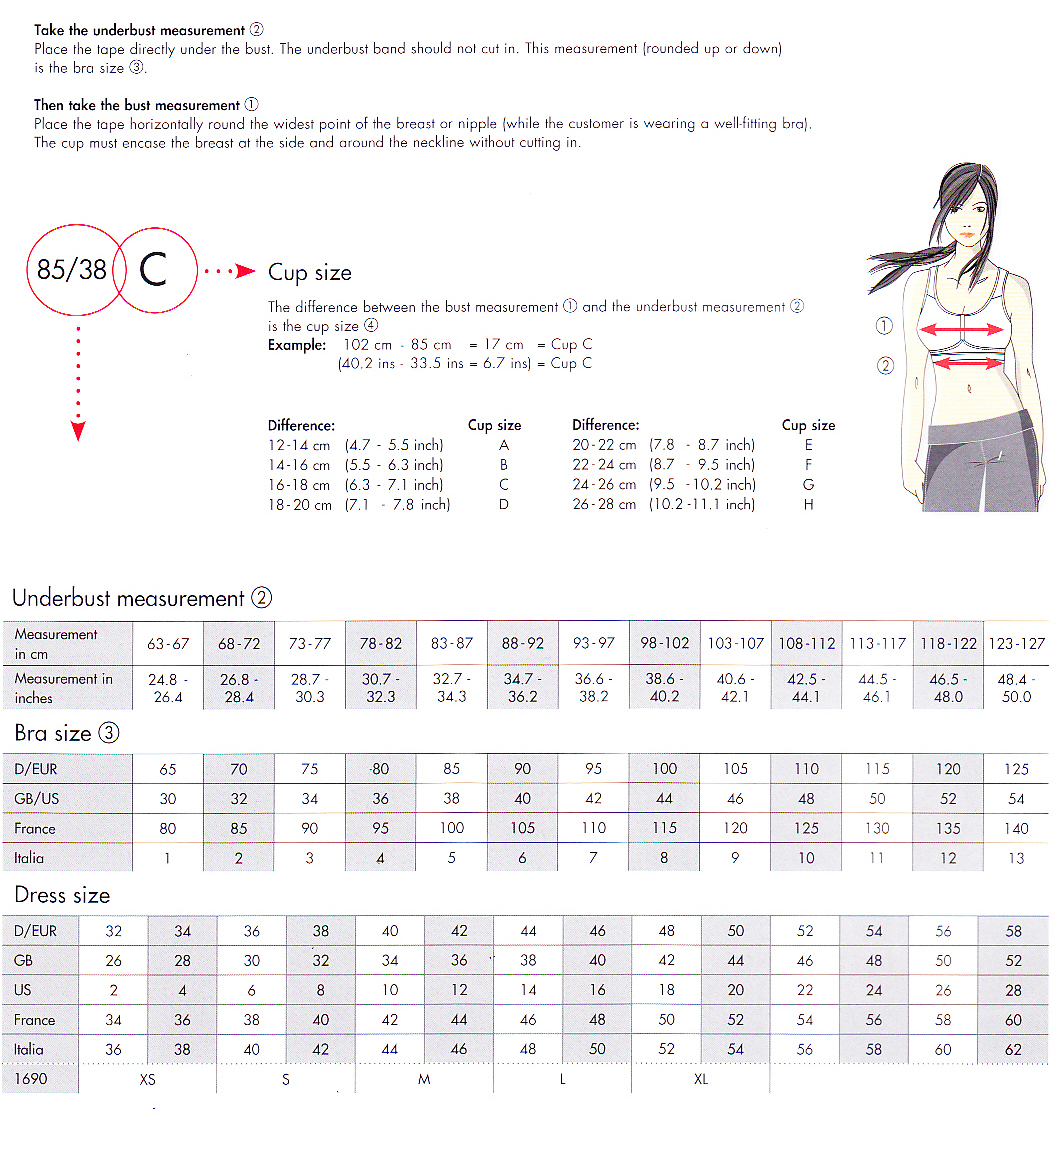 Even if you may already know how to measure your bra size, check out the bra fitting guide and our bra size calculator to discover what styles will suit your body best. If you often feel uncomfortable in your bras, it may be because you're wearing the wrong size.